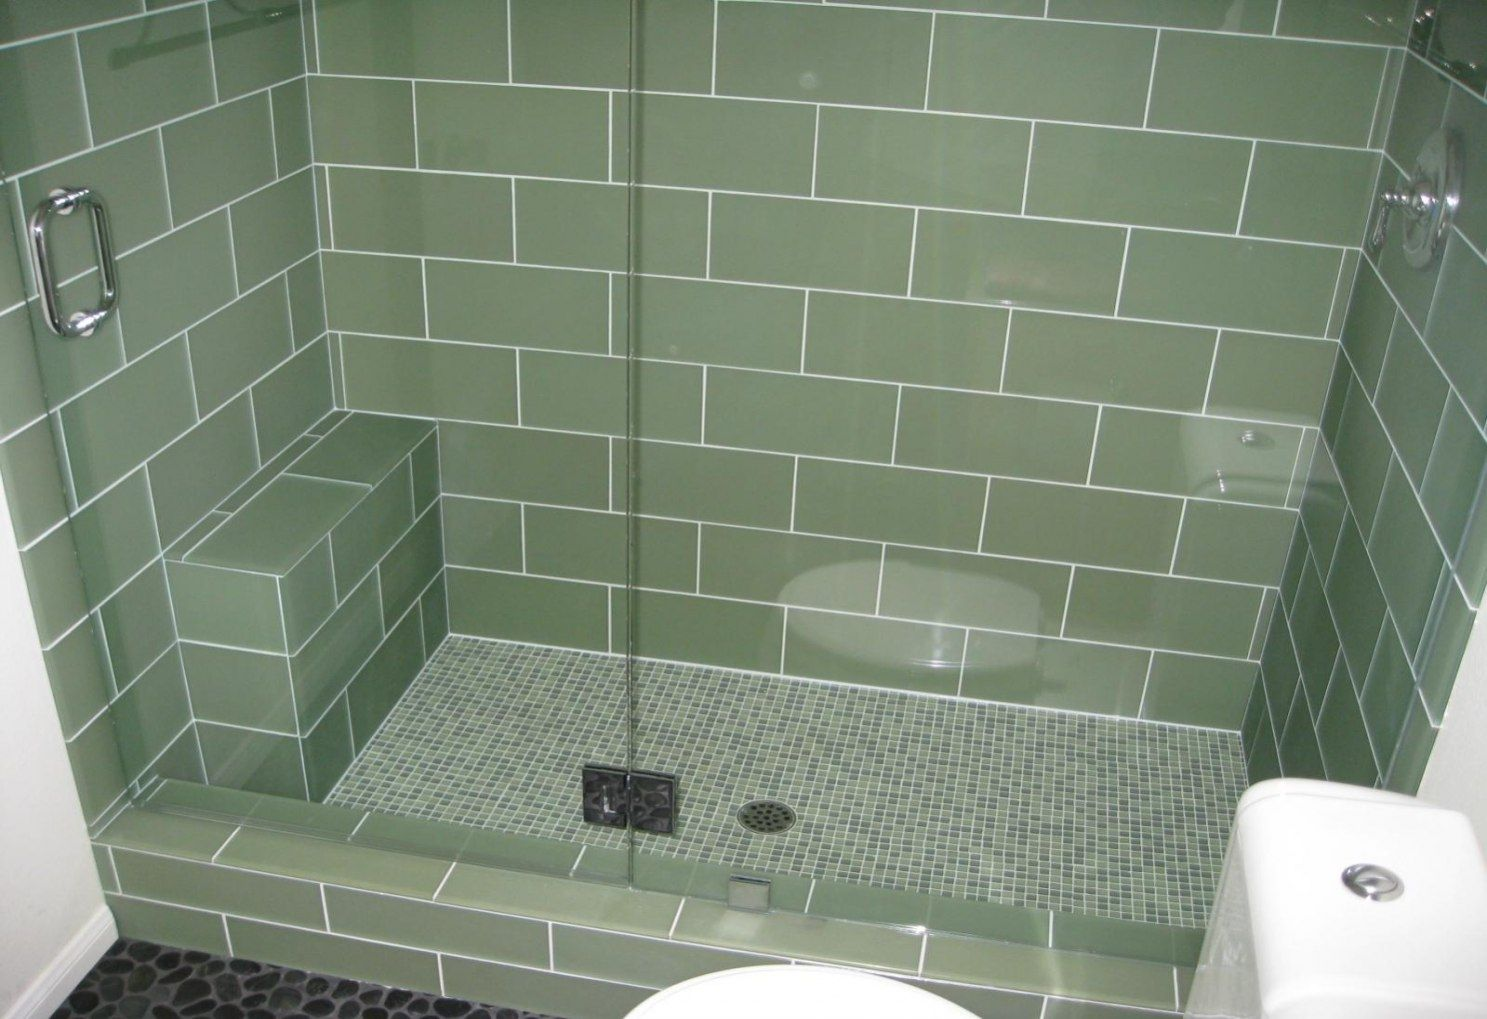 Exceptionnel Pebble Stone Shower Floor With Subway Tile And